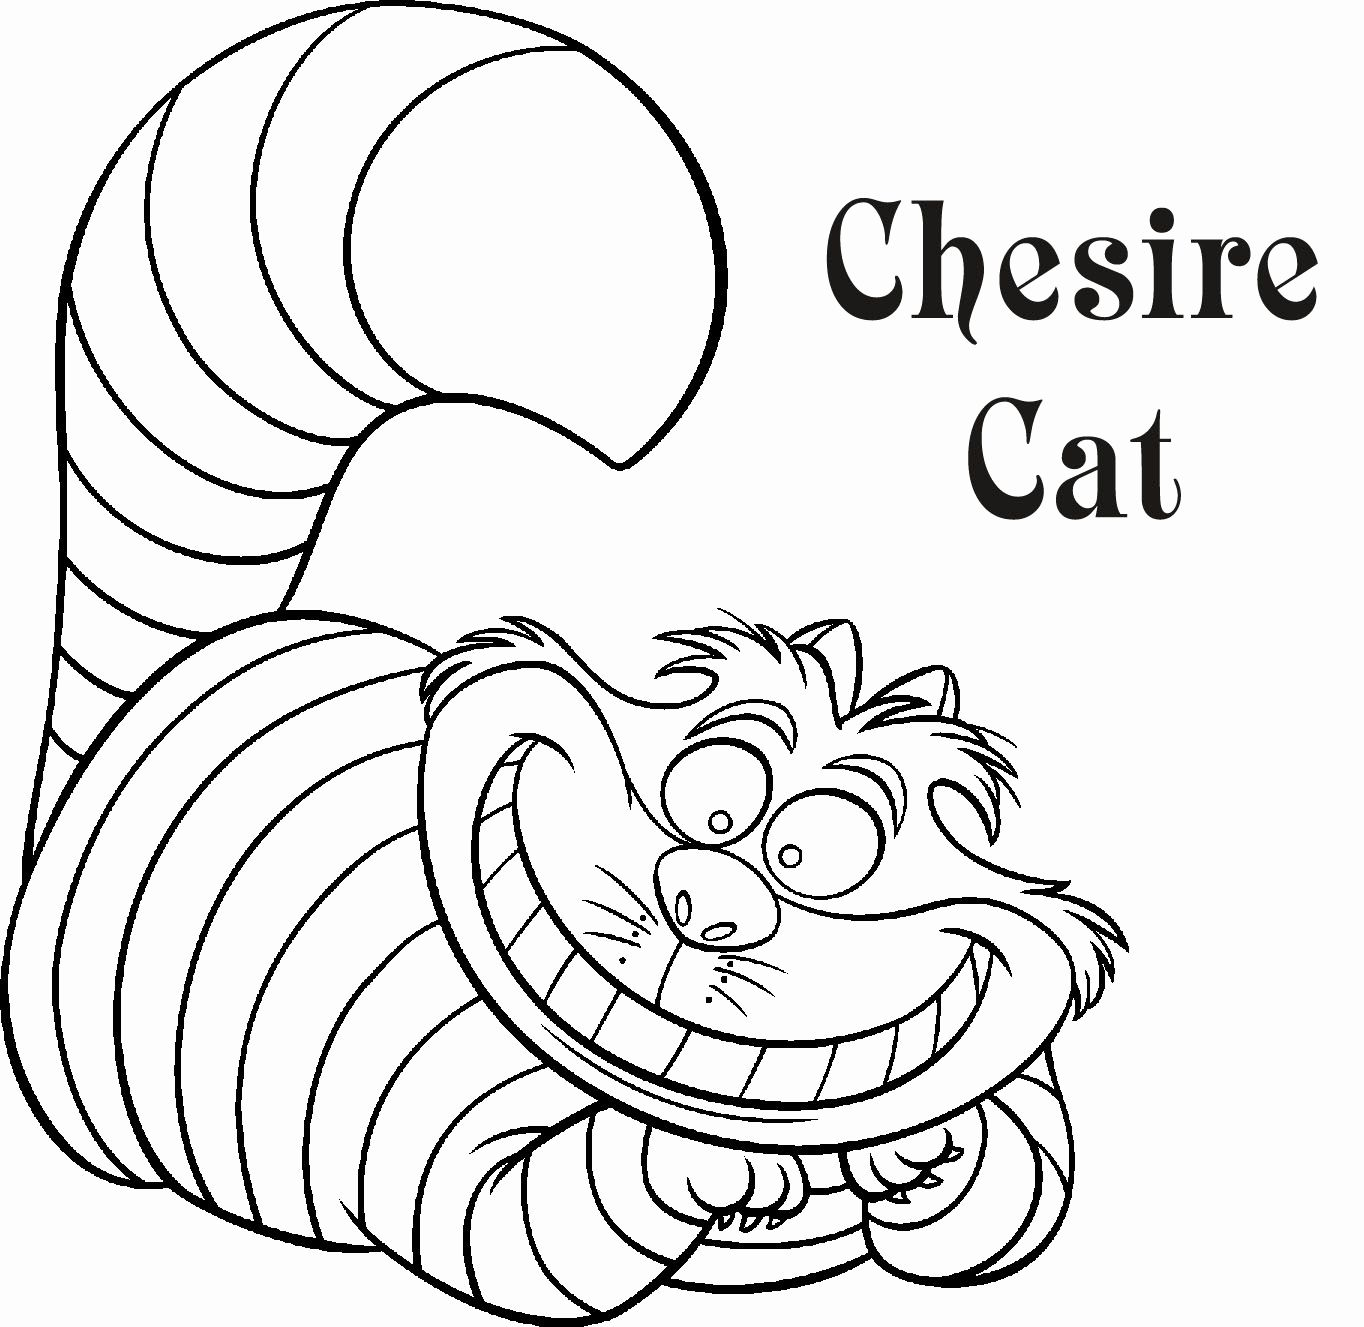 24 Cheshire Cat Coloring Page In